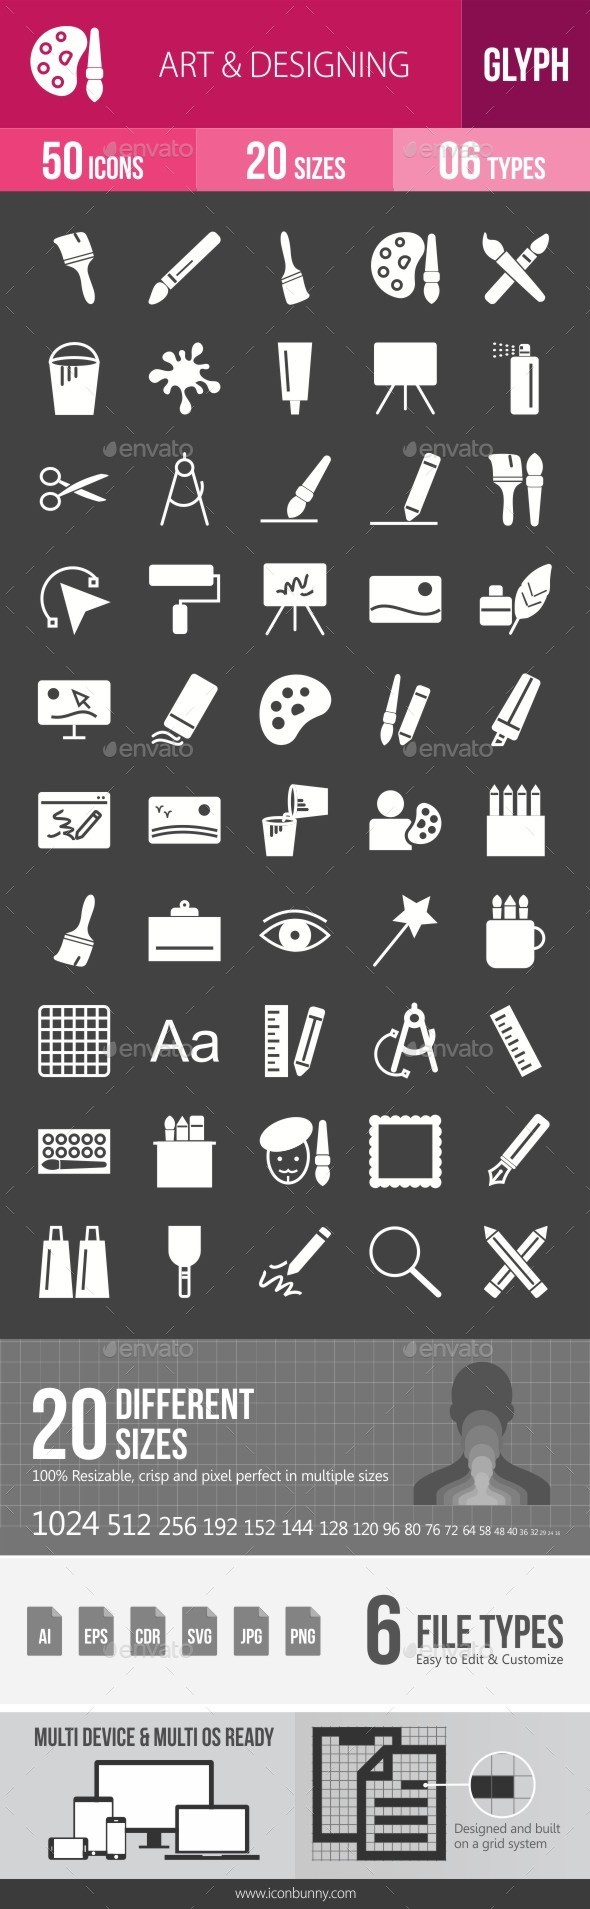 Art & Designing Glyph Inverted Icons - Icons